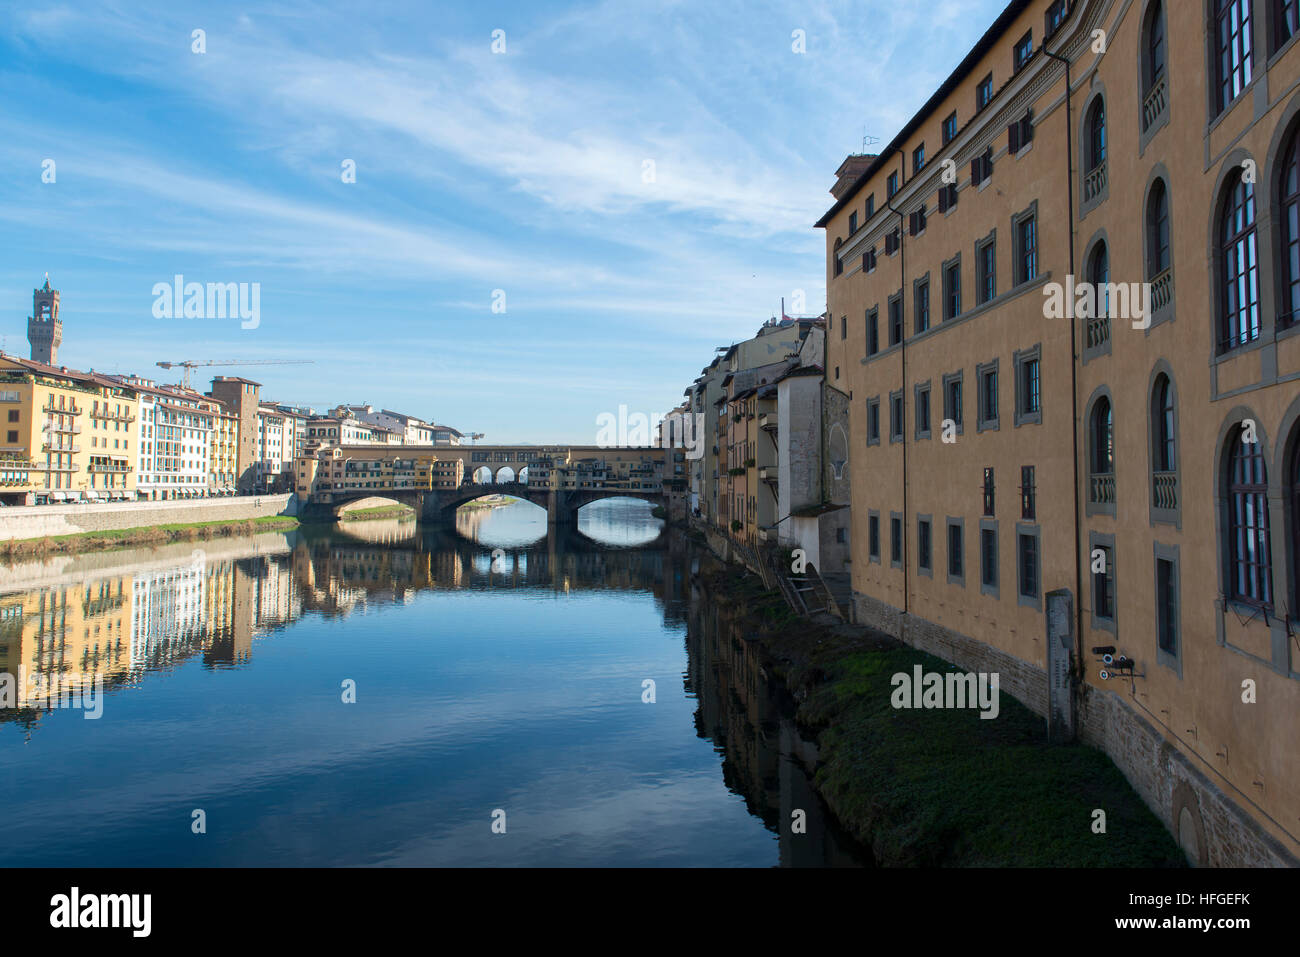 View of Arno river embankment with architecture and Ponte Vecchio bridge reflected on water - Stock Image